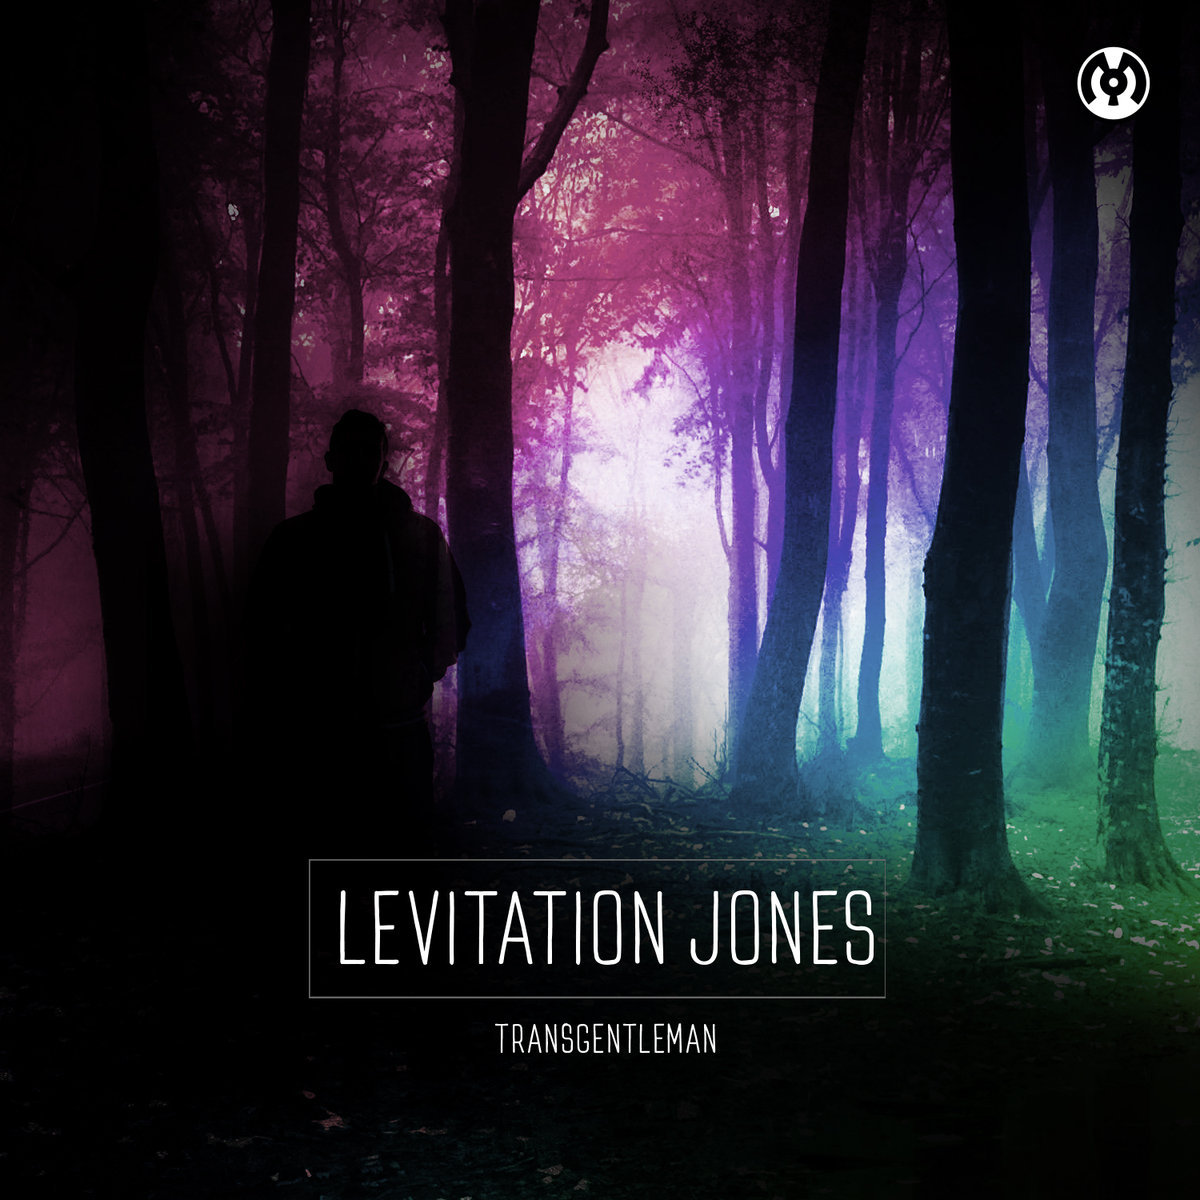 Levitation Jones - Robot Butterfly @ 'Transgentleman' album (electronic, dubstep)